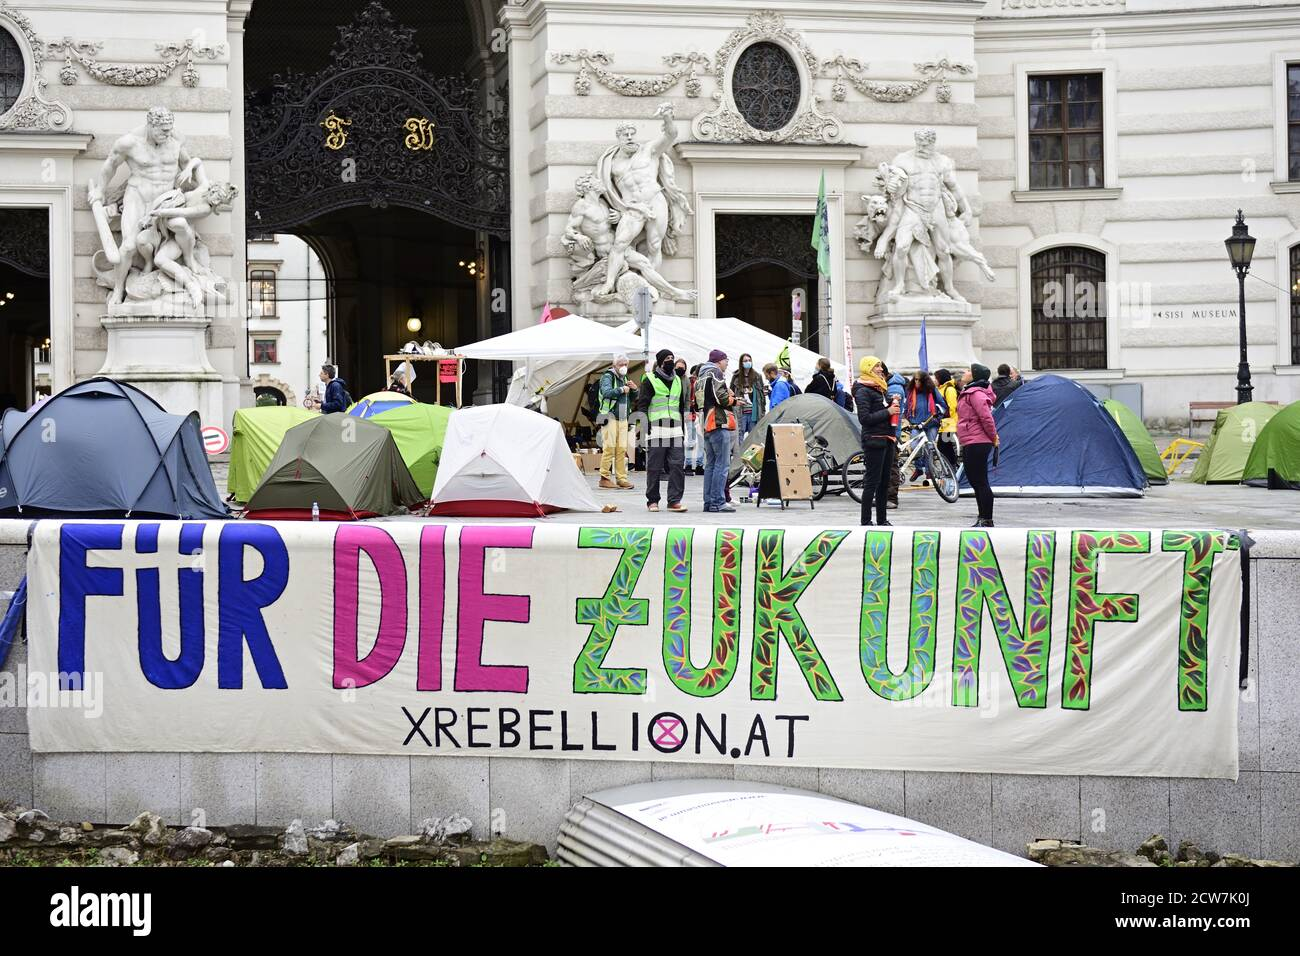 """Vienna, Austria. 28th Sept 2020.  Extinction Rebellion Protest at Michaelerplatz in Vienna. At an event that was not registered according to the police, the activists occupied the square with tents and banners, among other things. Picture shows a banner with the inscription """"For the future"""". Credit: Franz Perc/Alamy Live News Stock Photo"""